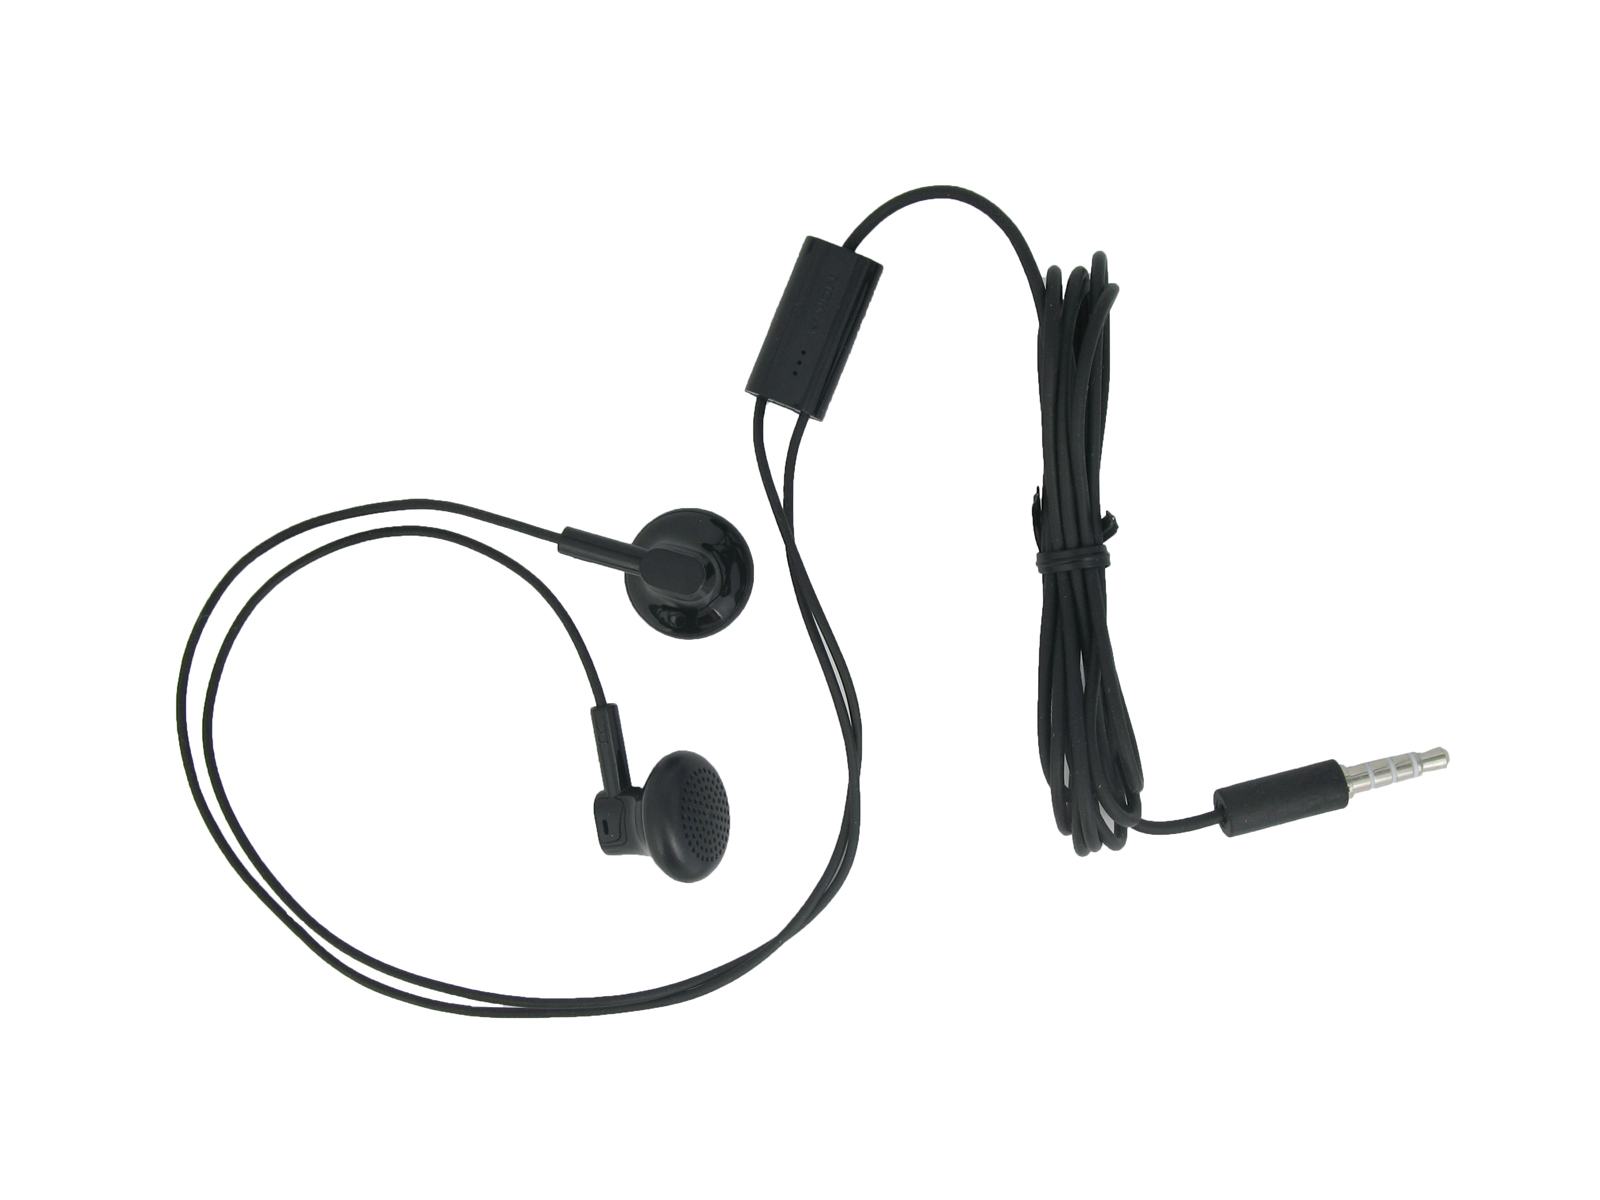 Genuine Nokia Wh 109 Black Stereo Headset Handsfree